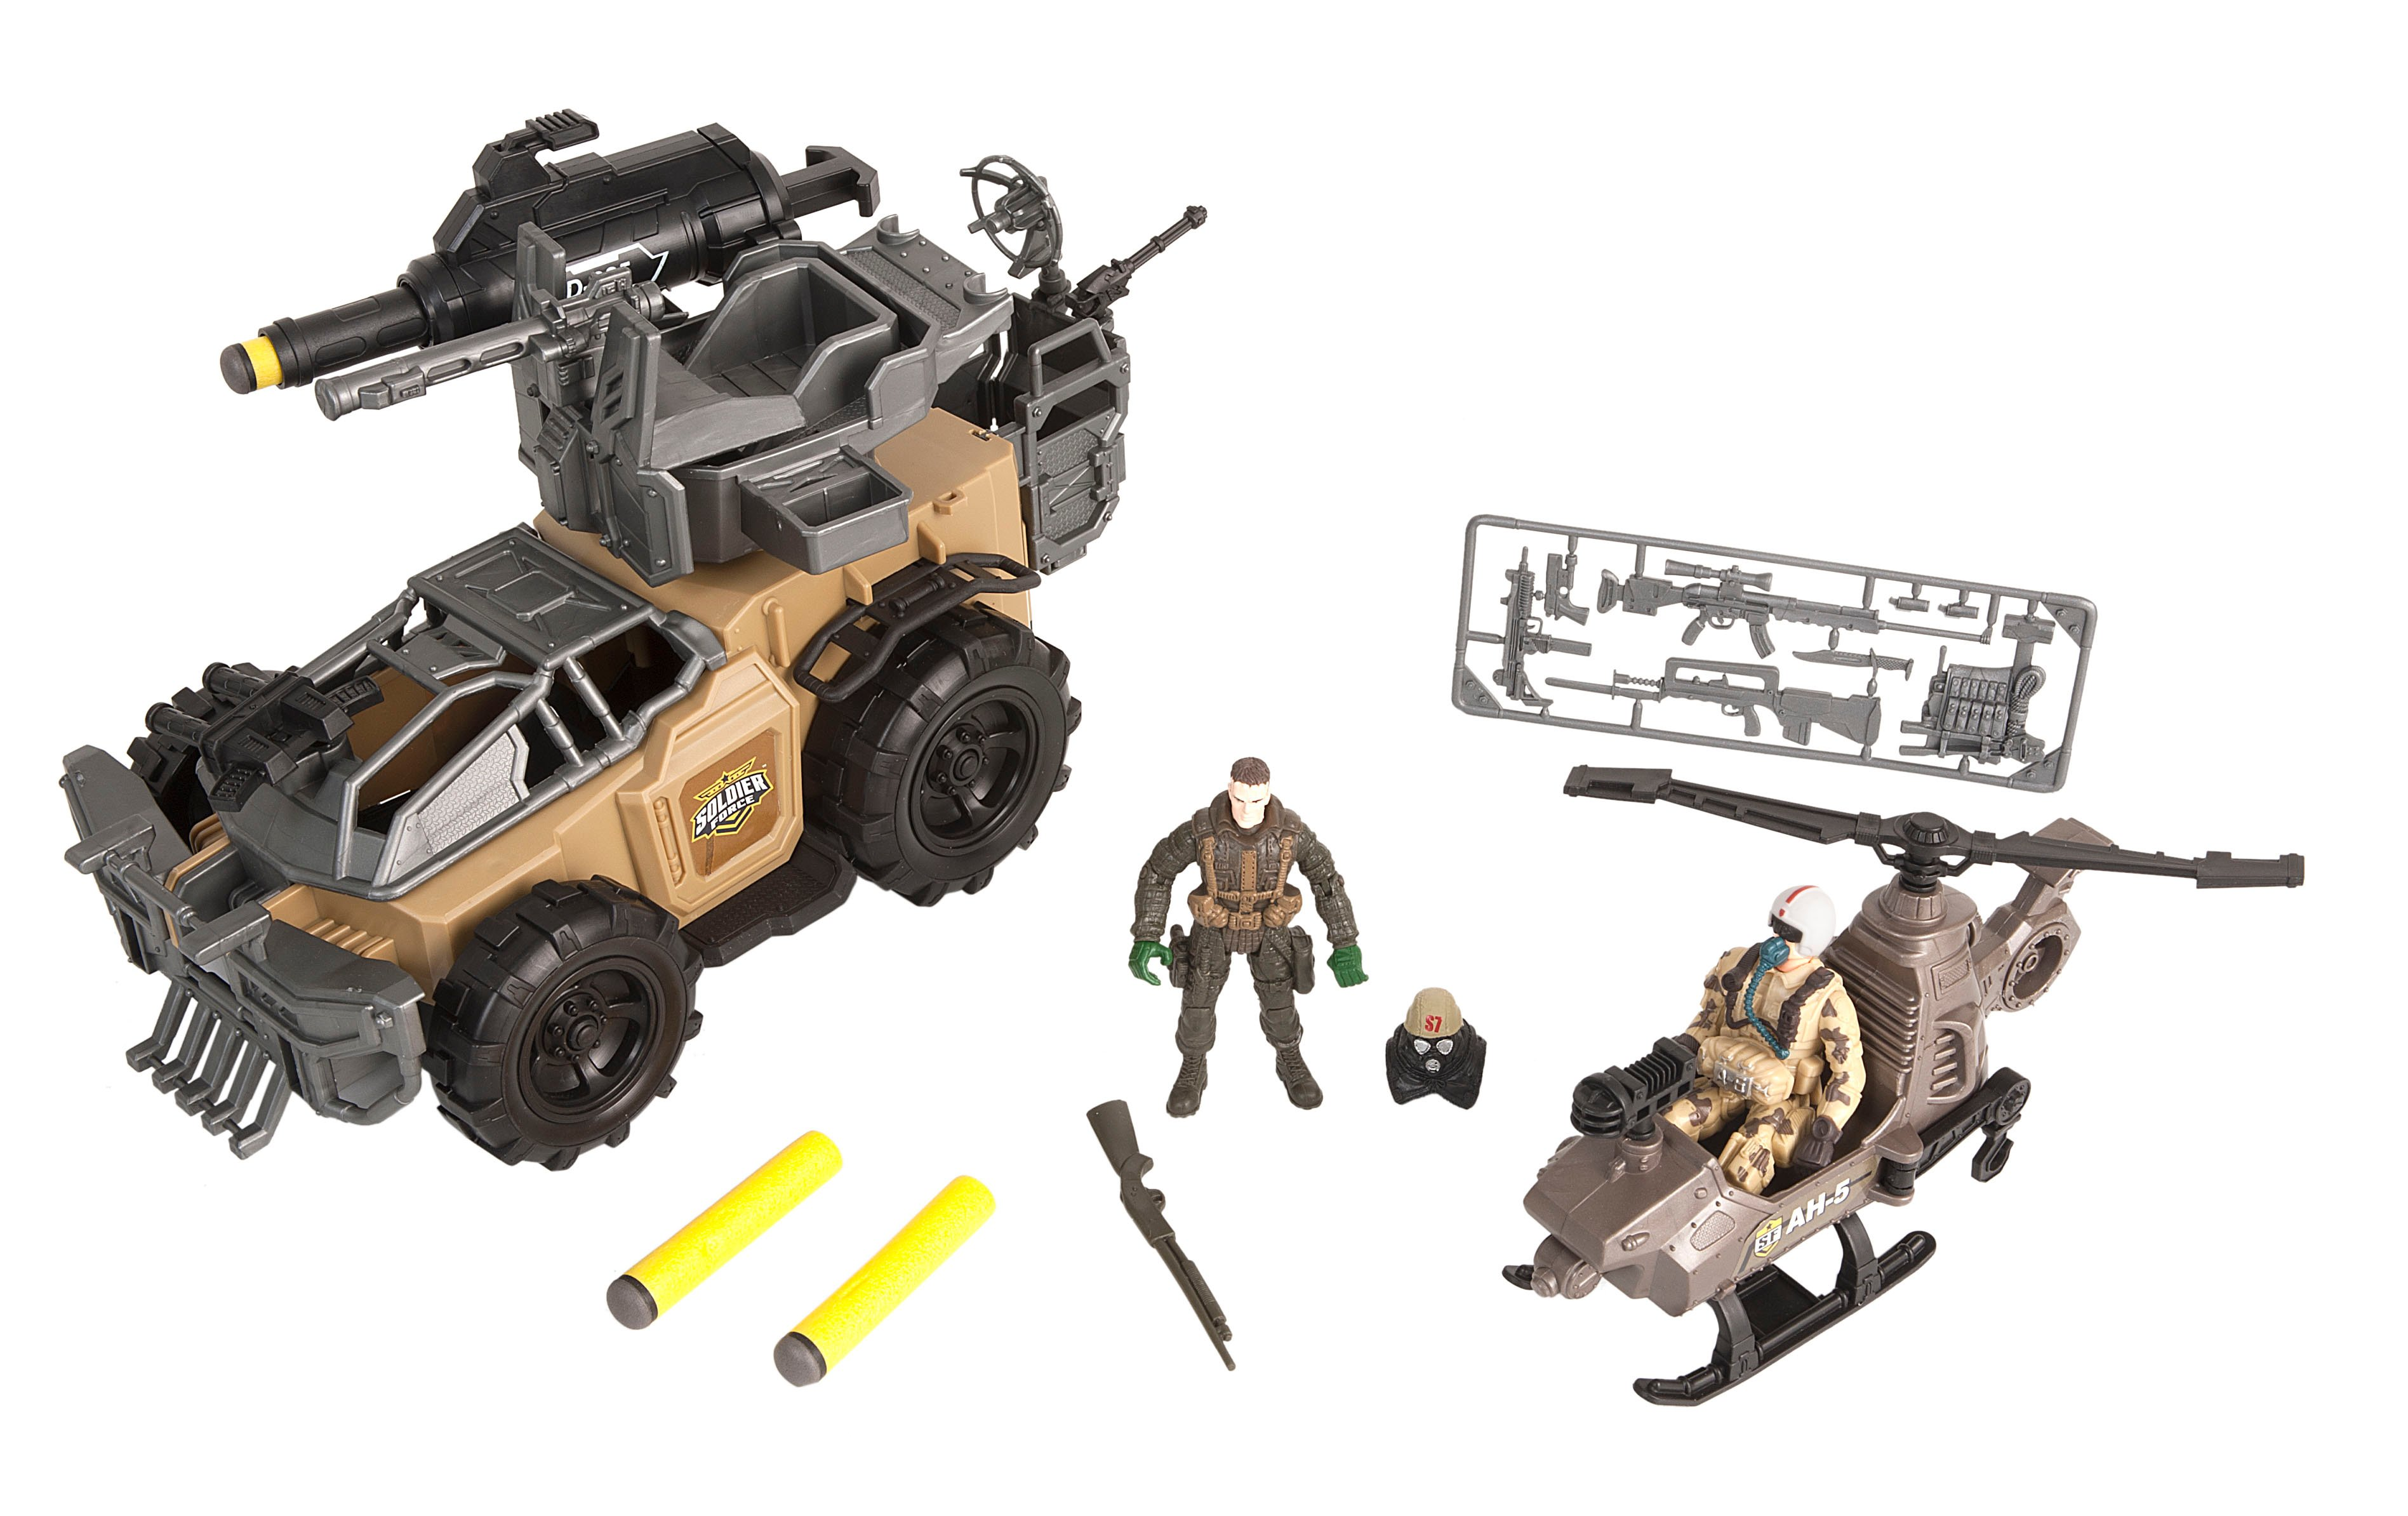 Soldier Force - Bunker Destroyer Playset (545015)